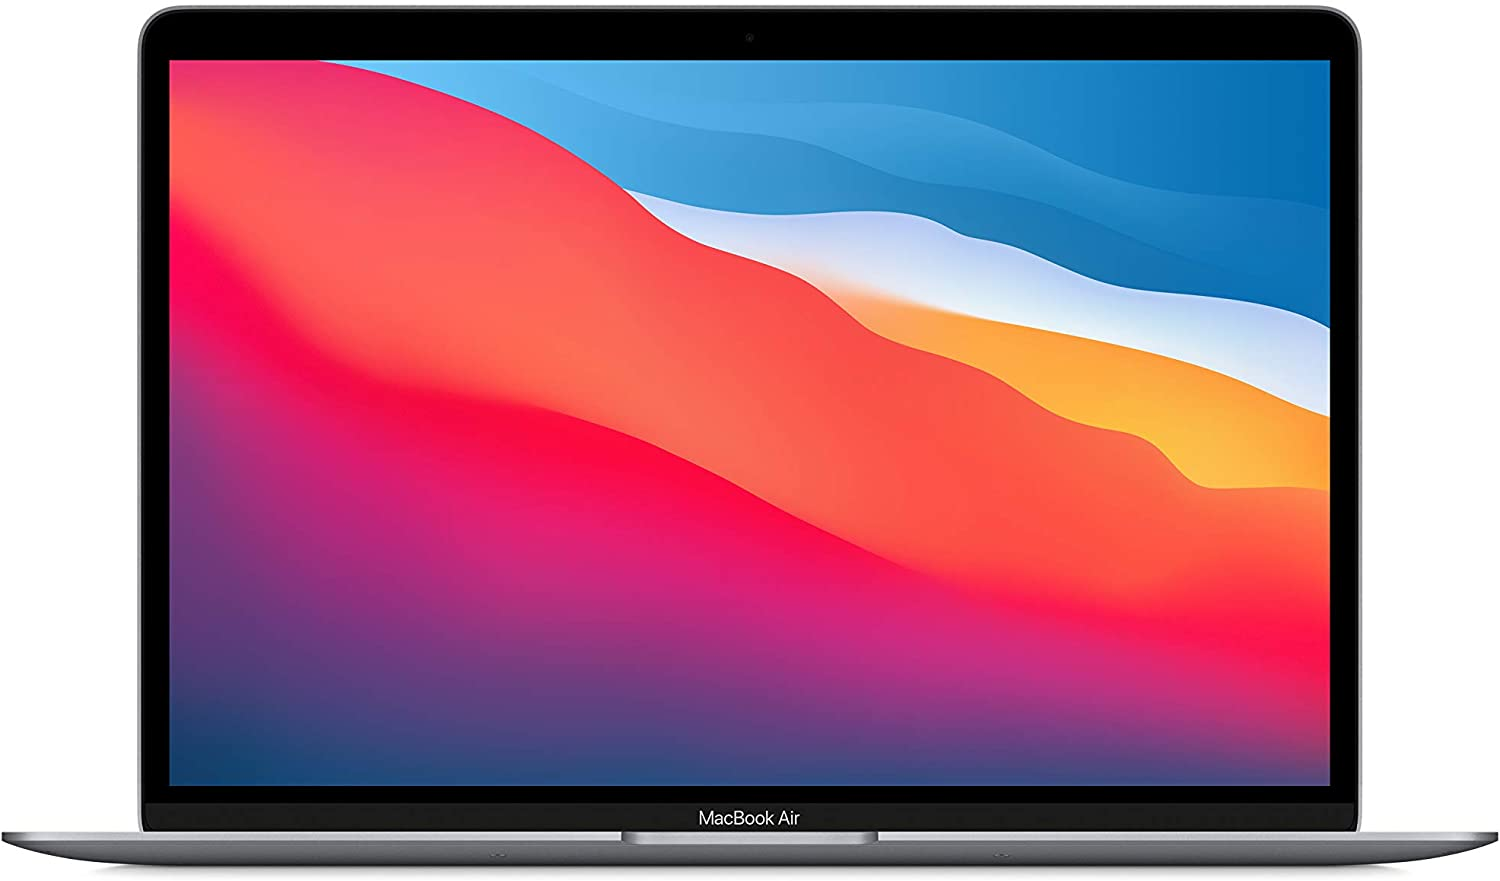 New Apple MacBook Air with Apple M1 Chip (13-inch, 8GB RAM, 256GB SSD Storage) -  (Latest Model)